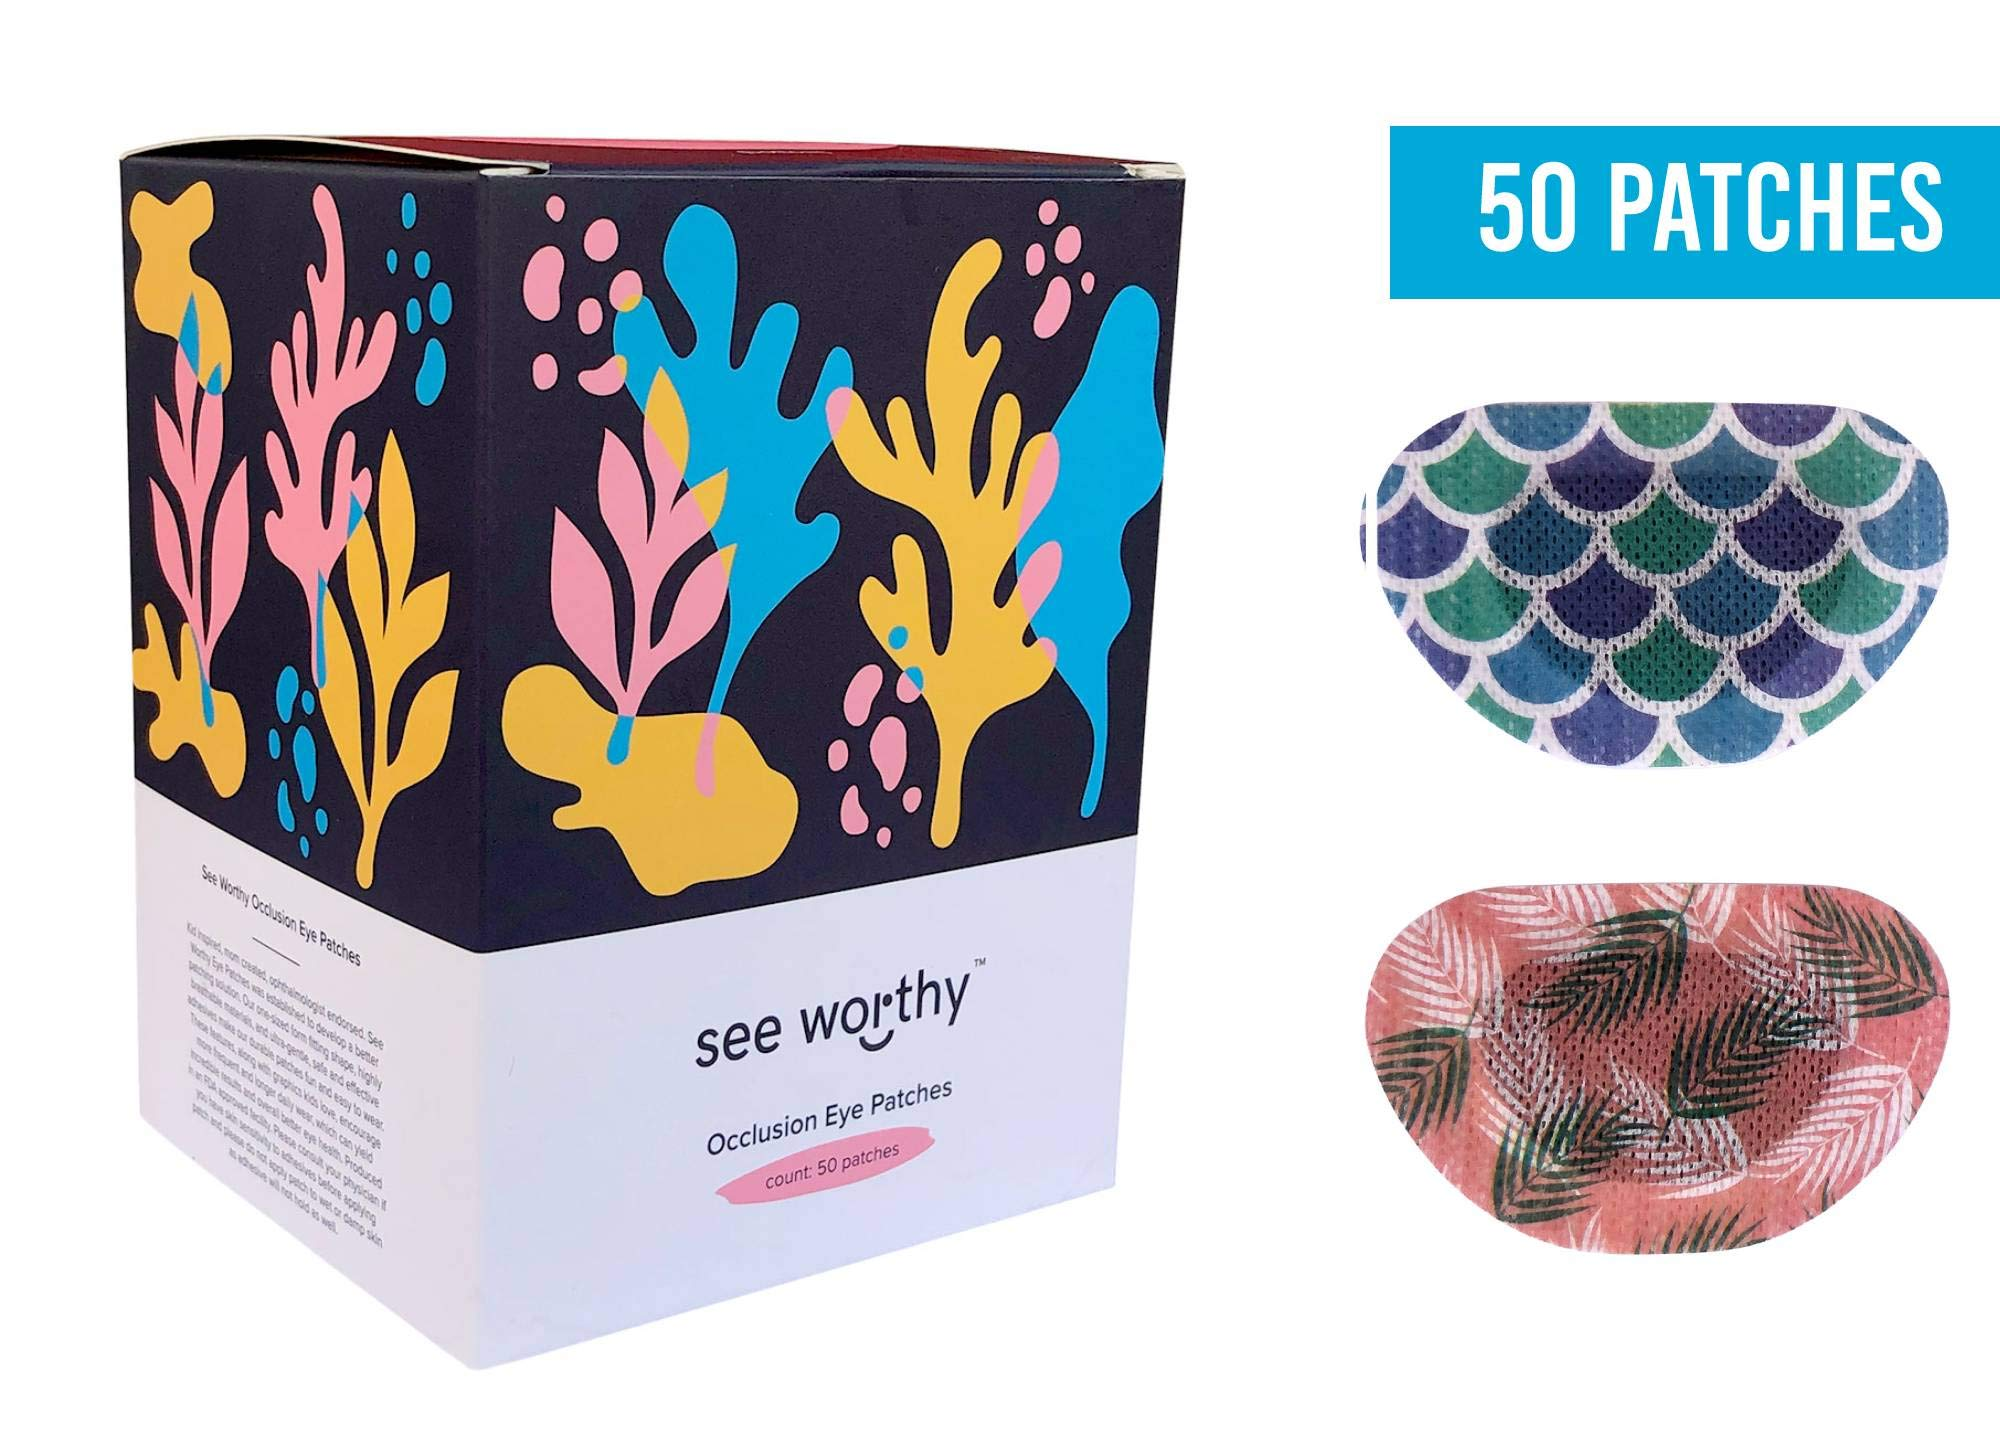 See Worthy (Mermaid and Palm) Adhesive Kids Eye Patches, Innovative Shape, Smart Adhesive Technology, Breathable Material and New Designs, (50 per Box) (Regular Size)